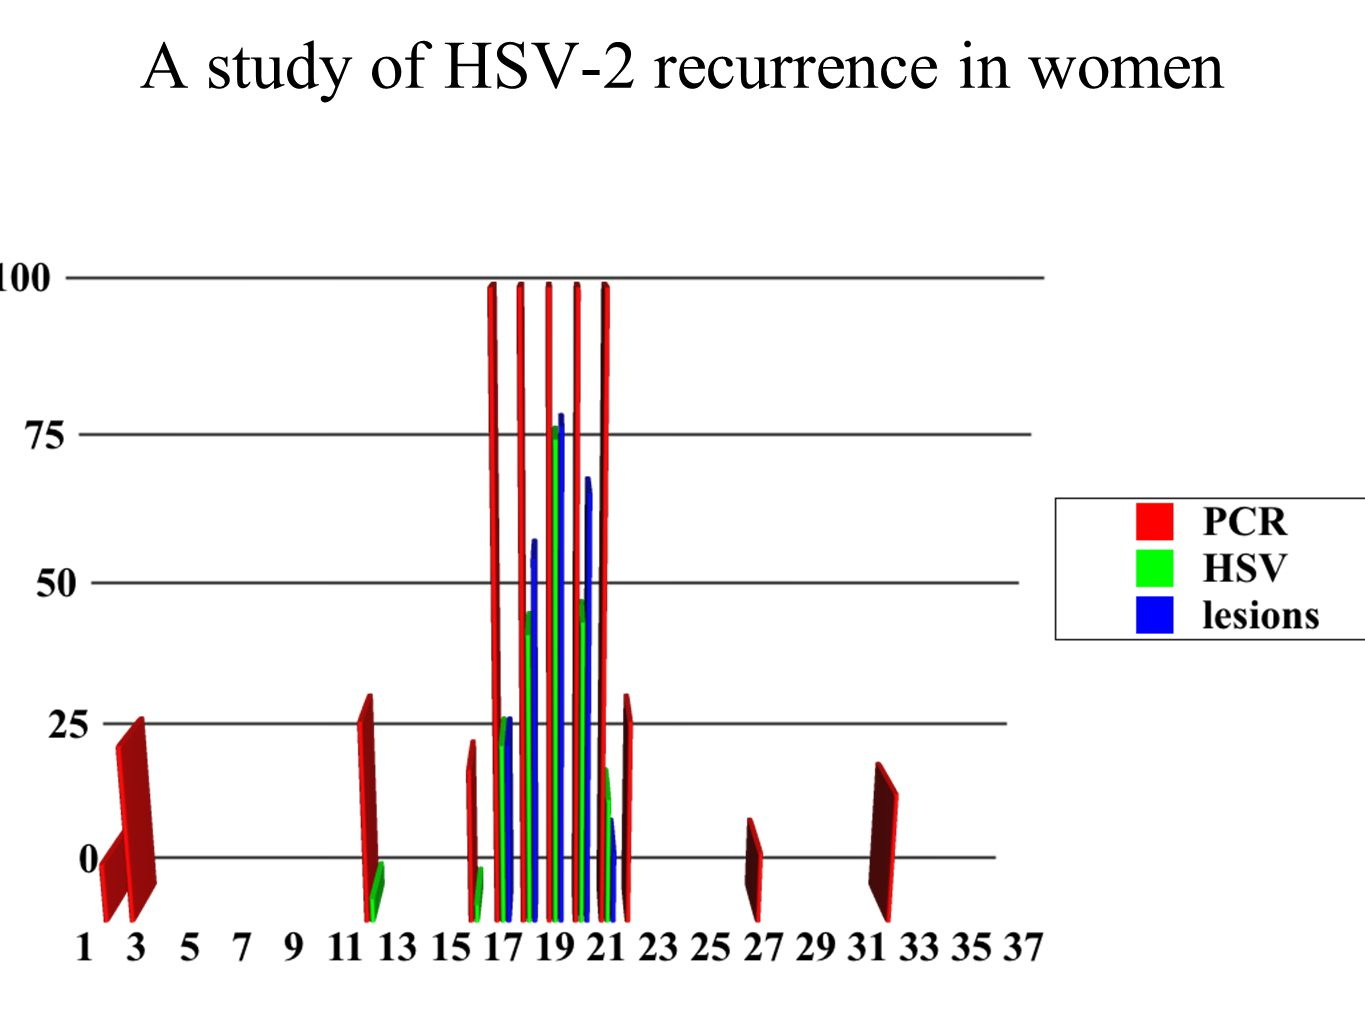 A study of HSV-2 recurrence in women